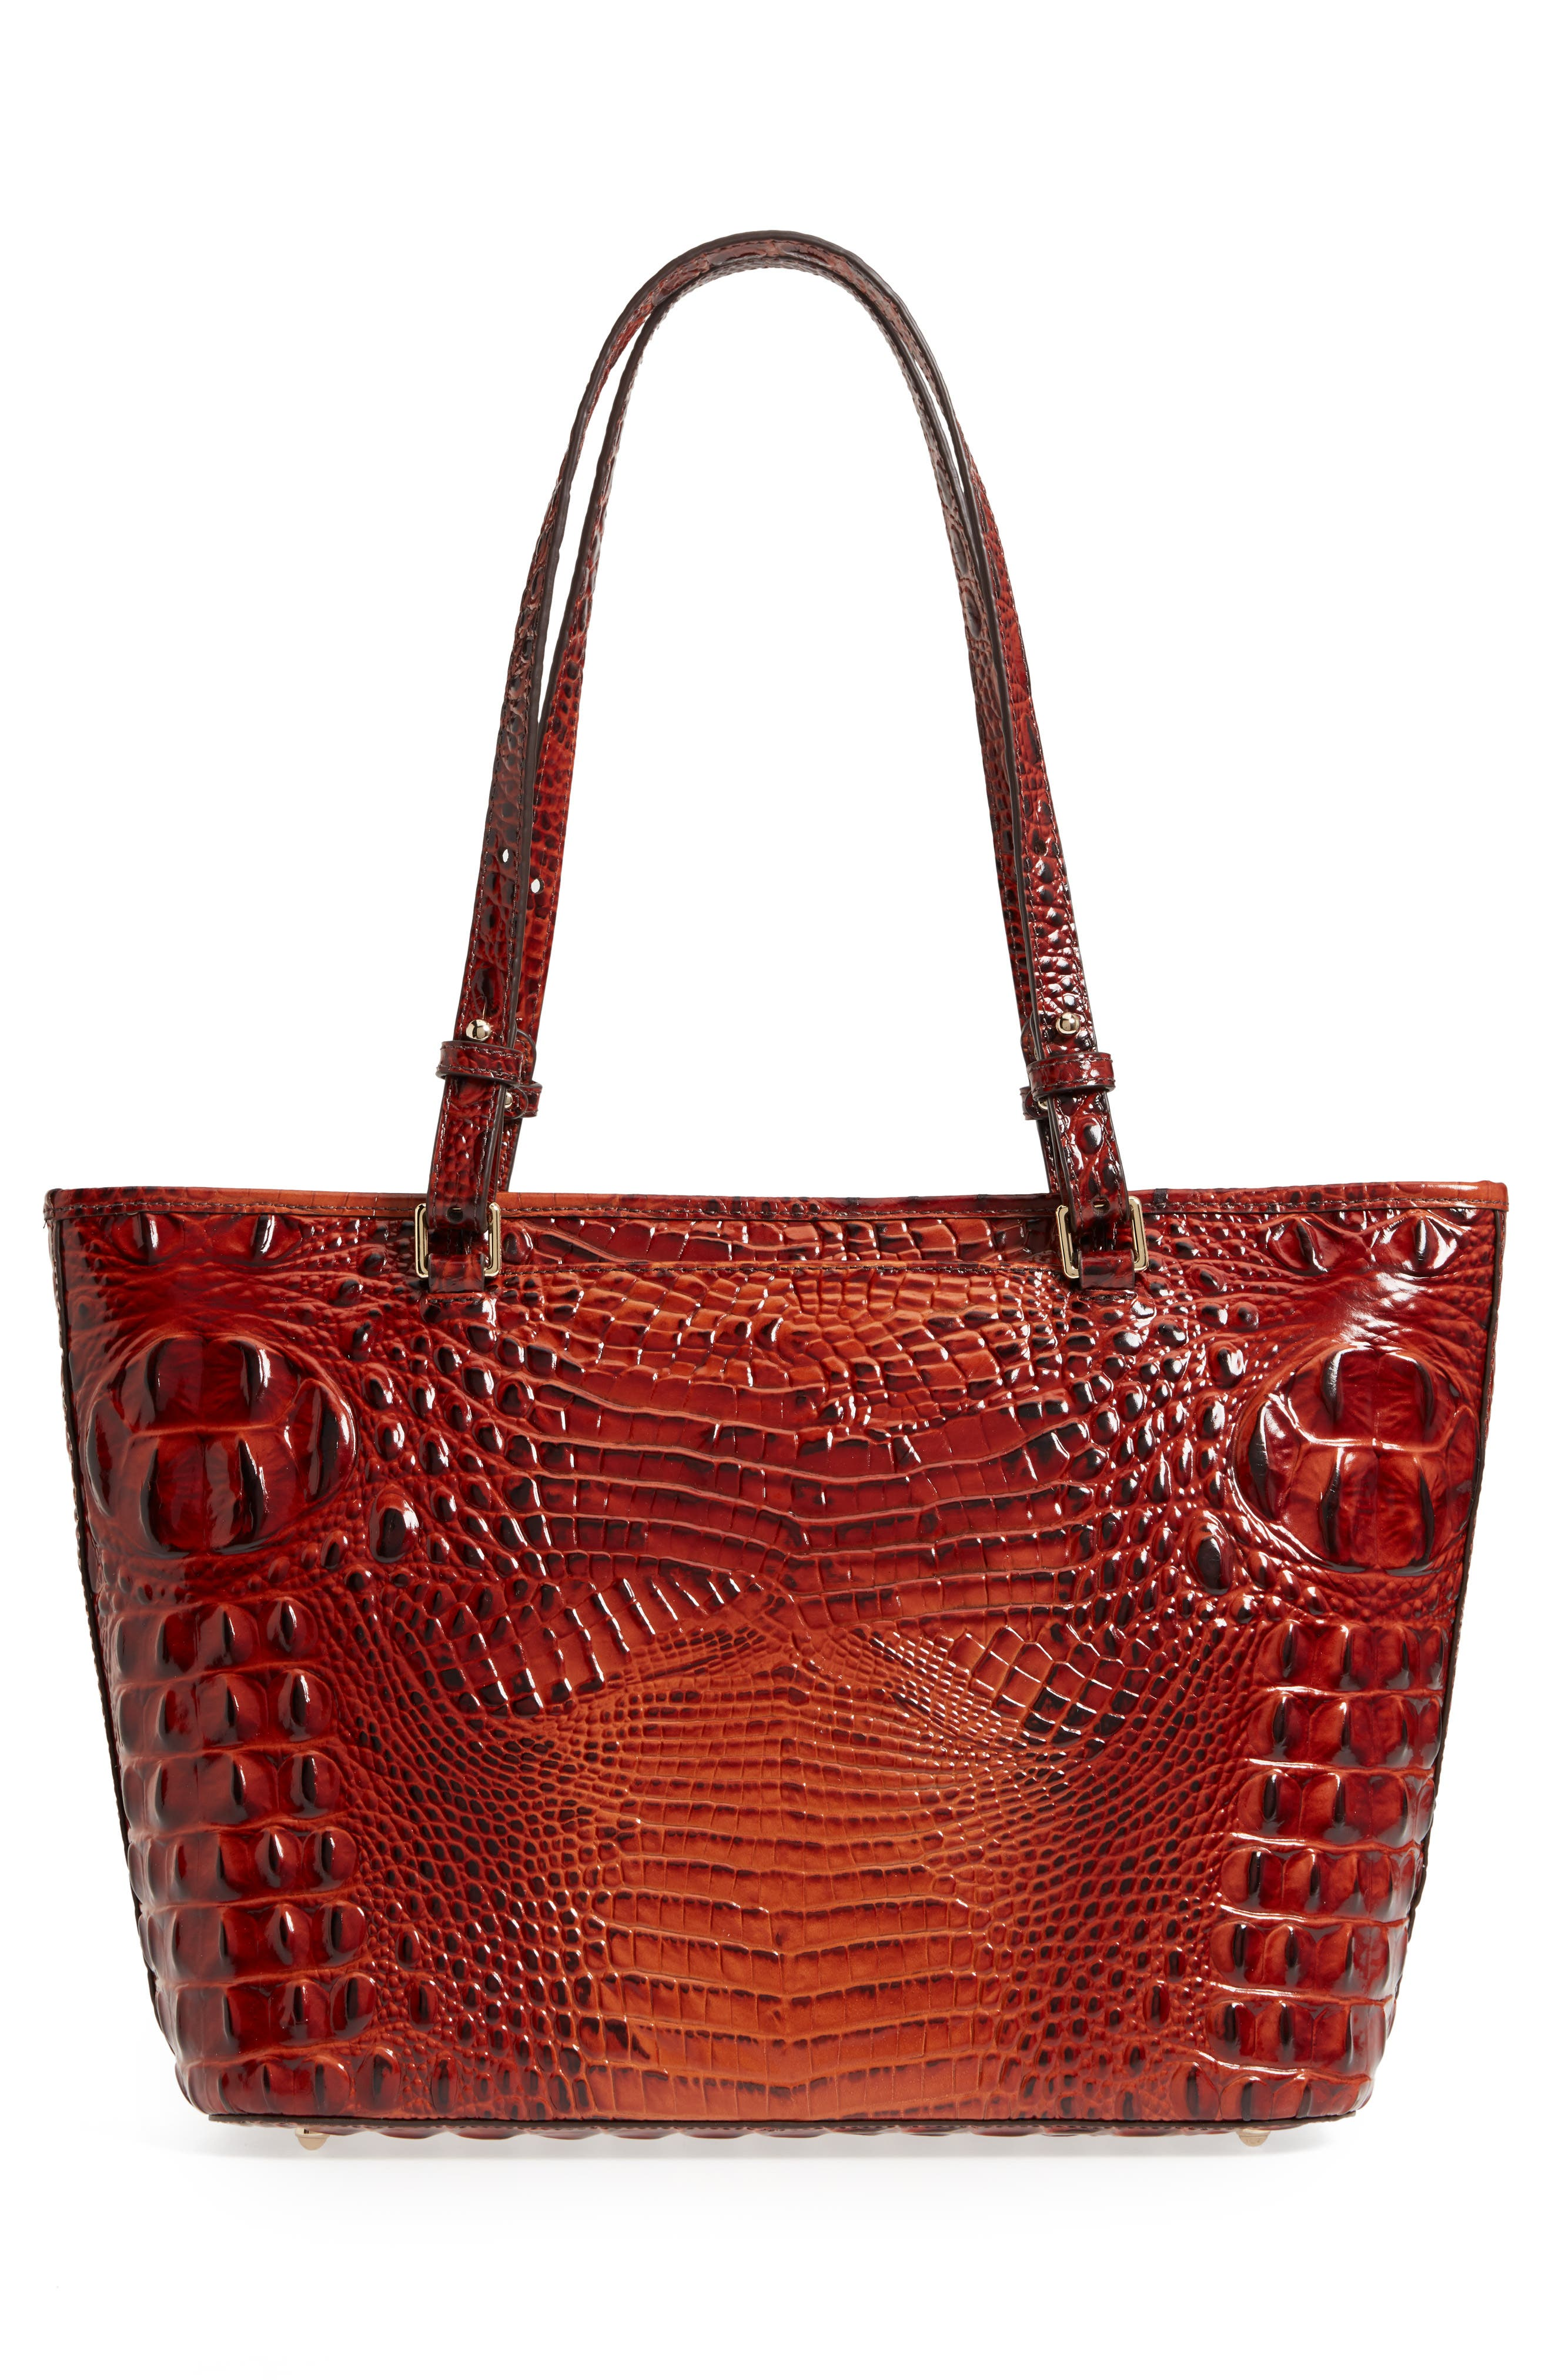 Medium Asher Leather Tote Bag,                             Alternate thumbnail 3, color,                             PECAN